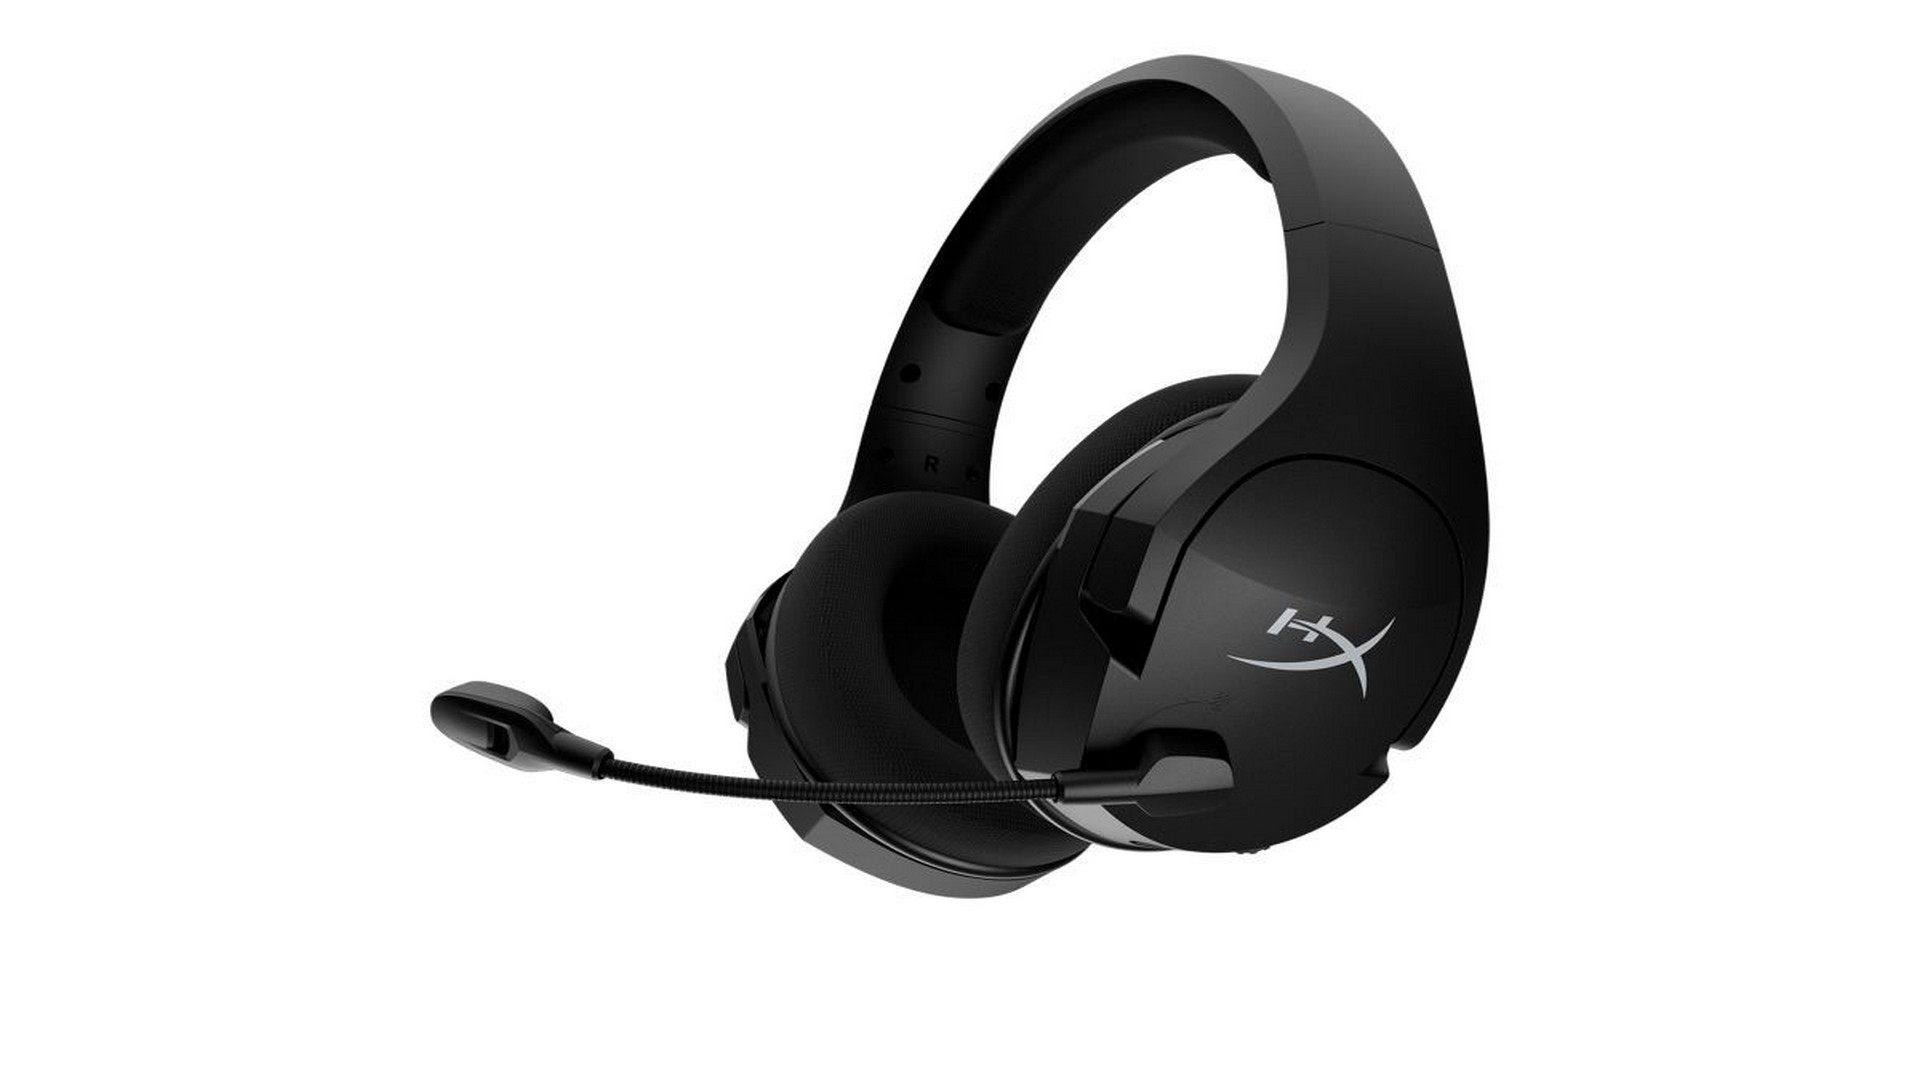 HyperX Expands HyperX Stinger Headset Lineup with Two New Economical Gaming Headsets